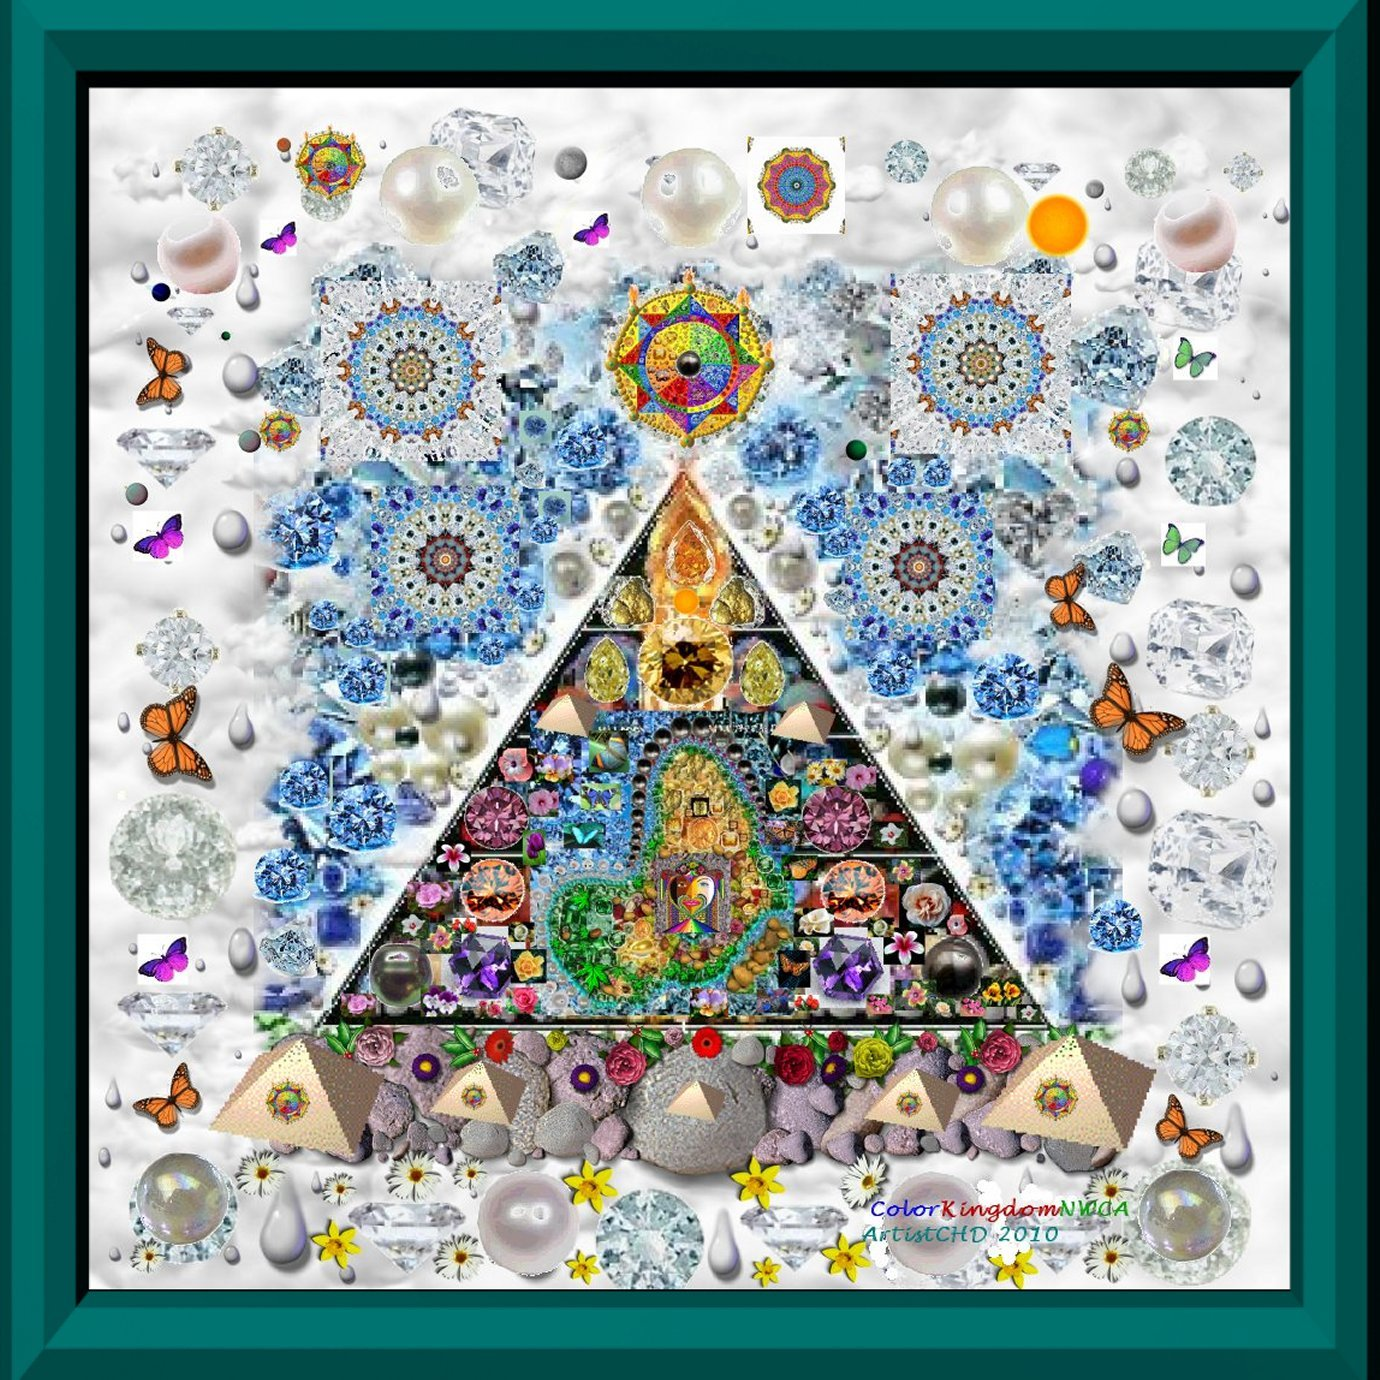 Download the Arts and Crafts Other Files | Positive Pyramid Power!!!